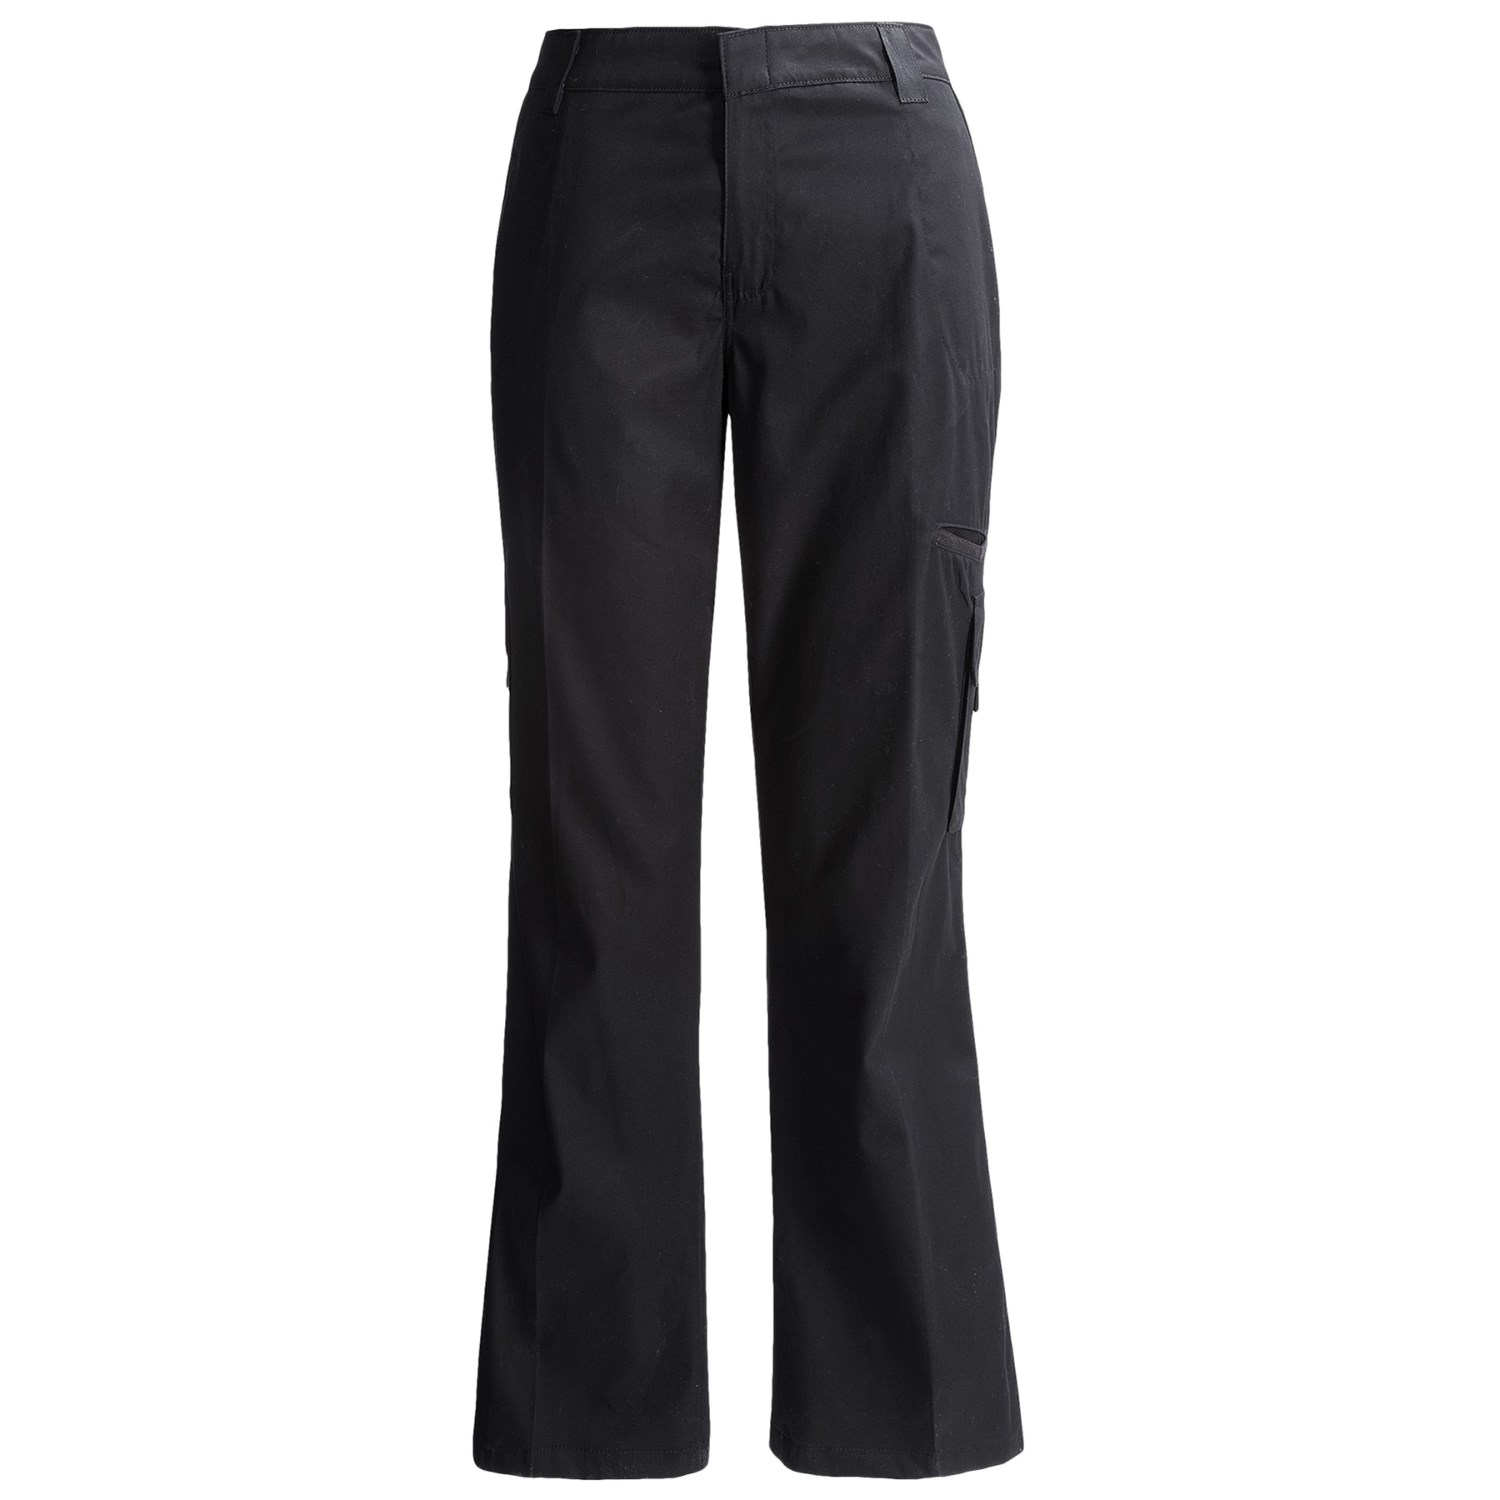 23b51721f1d Dickies Relaxed Fit Cargo Pants (For Plus Size Women) 7723J 49 on ...